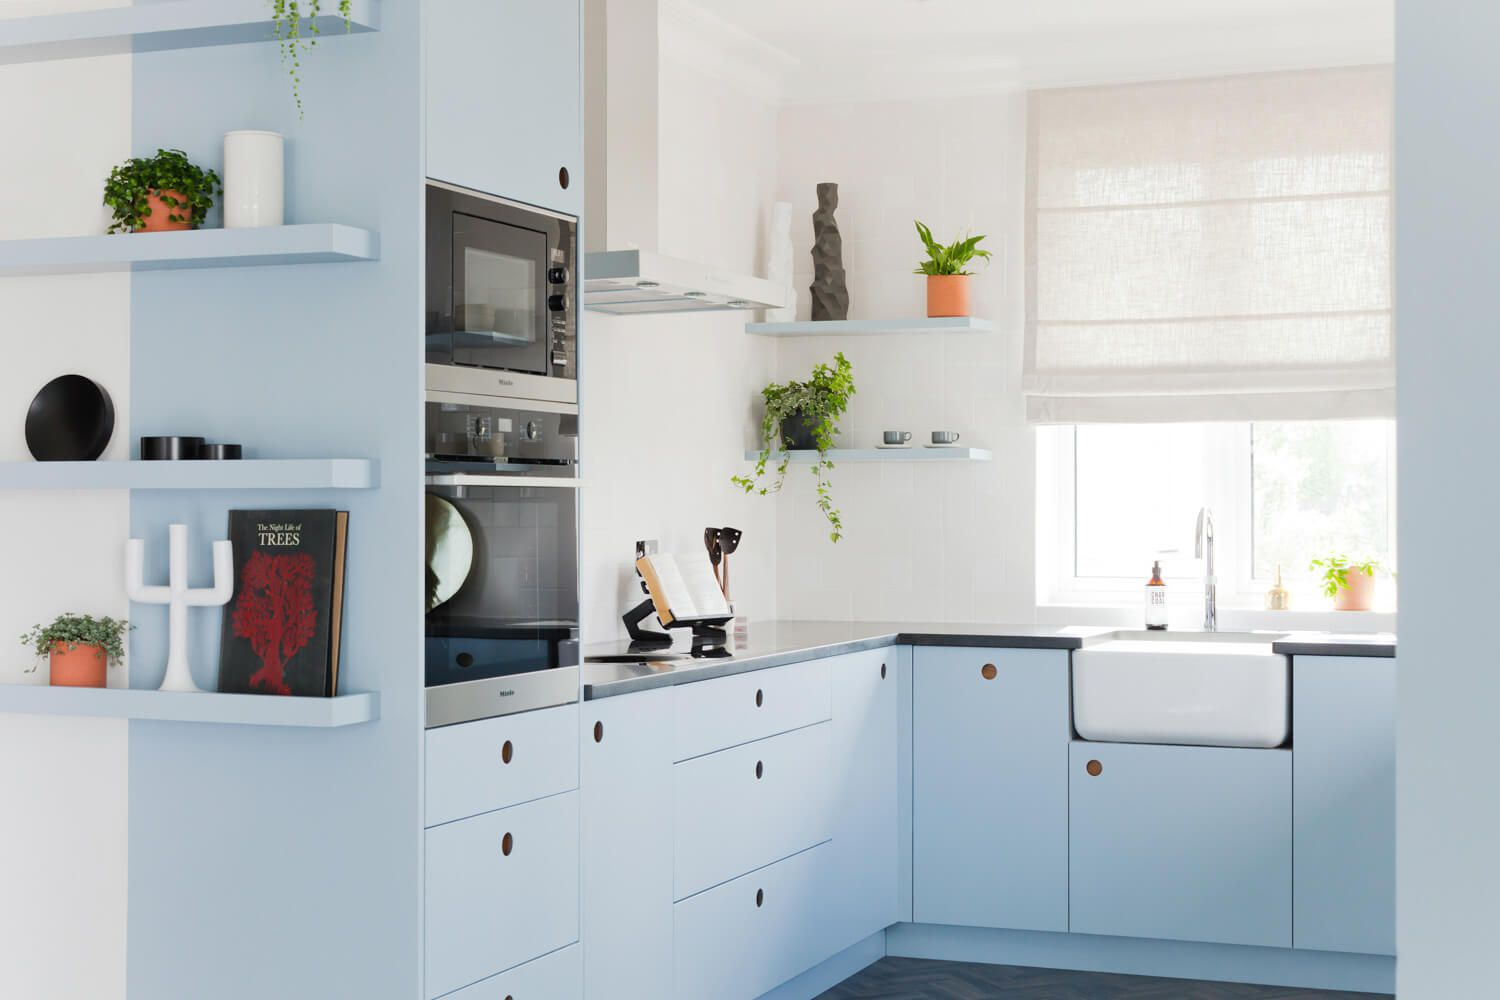 Small kitchen with baby blue cabinets.